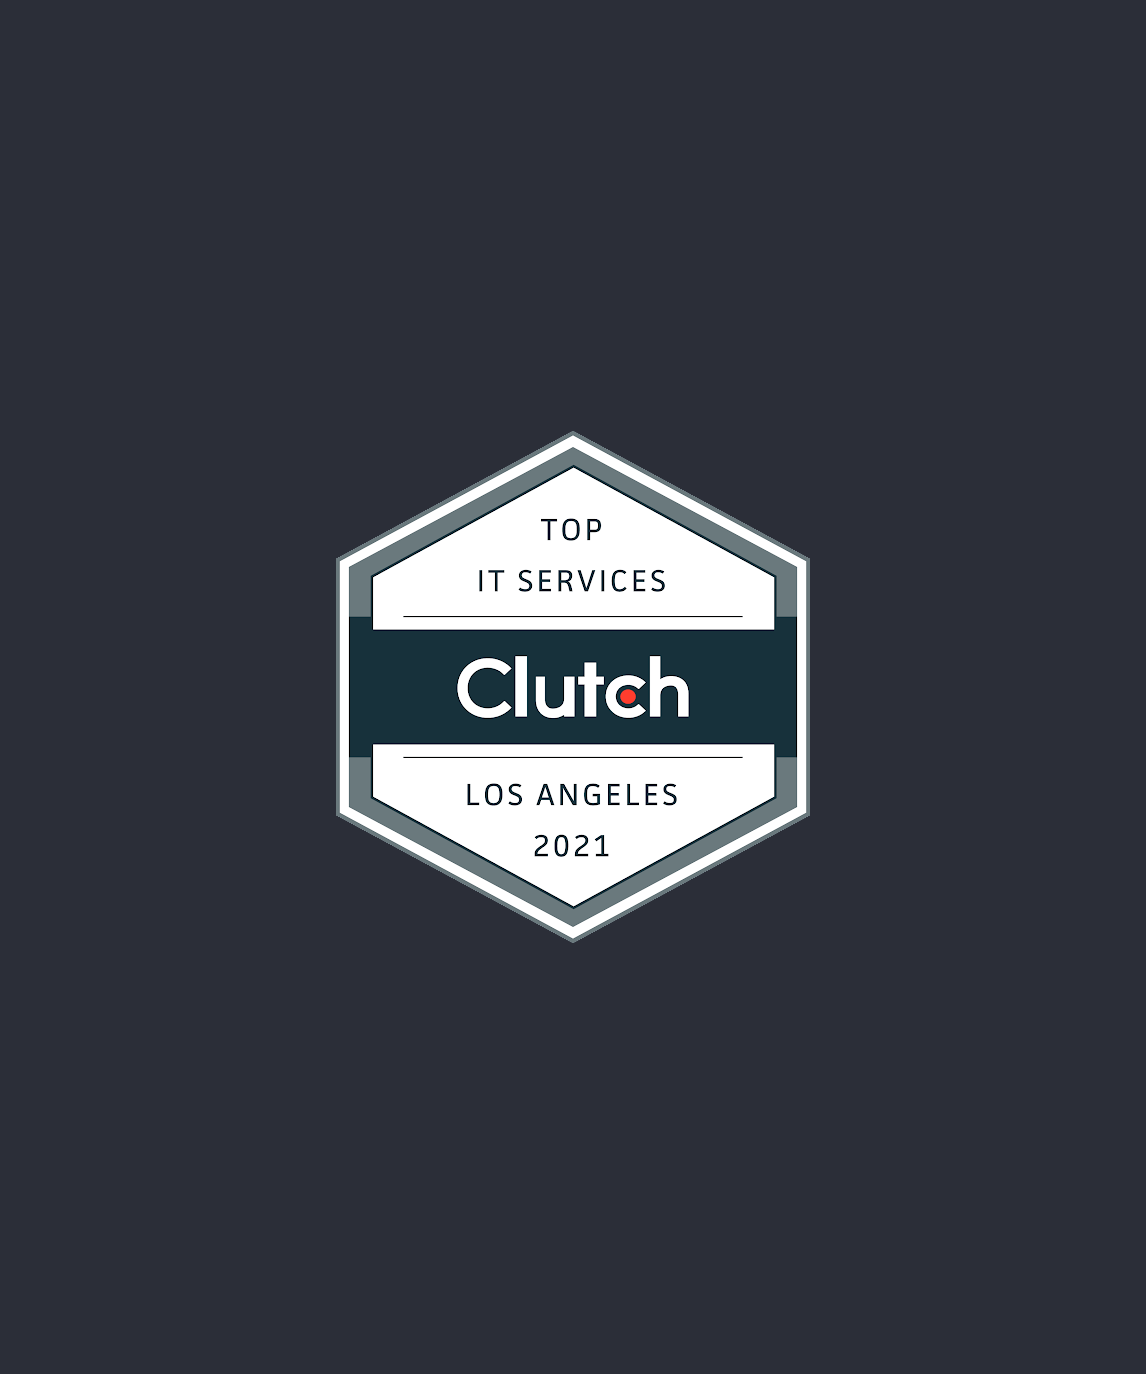 Clutch Lists CreateApe as a Top UX Designer in Los Angeles for 2021!